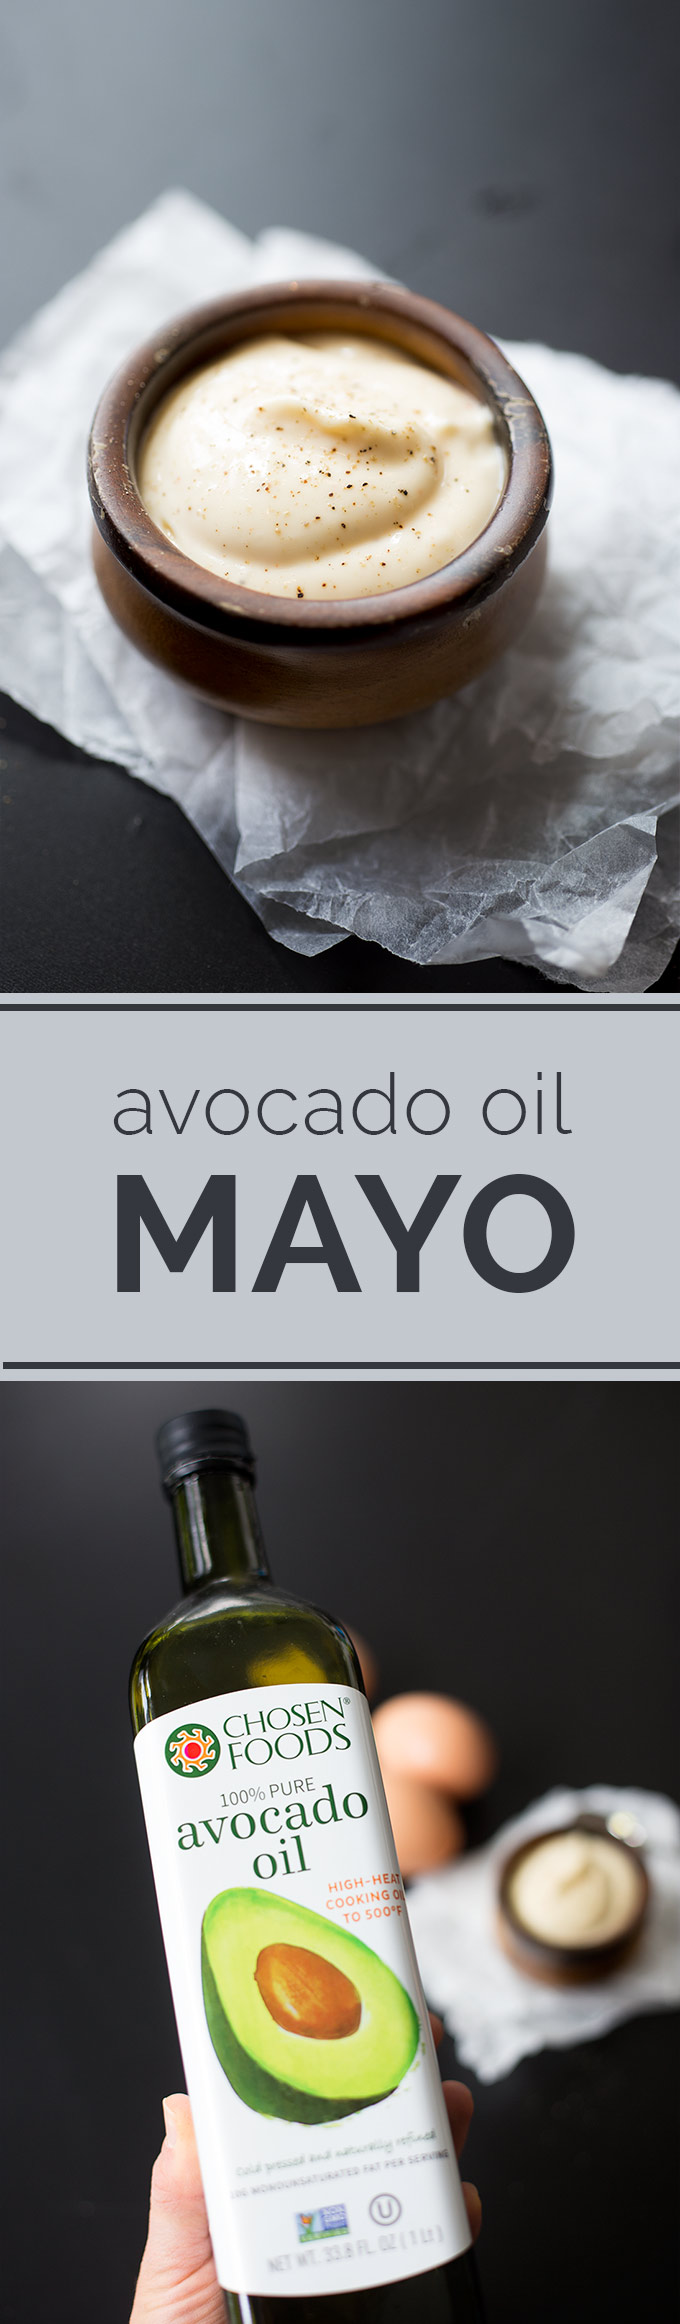 Avocado Oil Mayo - a much healthier option than store-bought mayos, which are made from highly processed vegetable oils. Simple to make and tastes amazing!